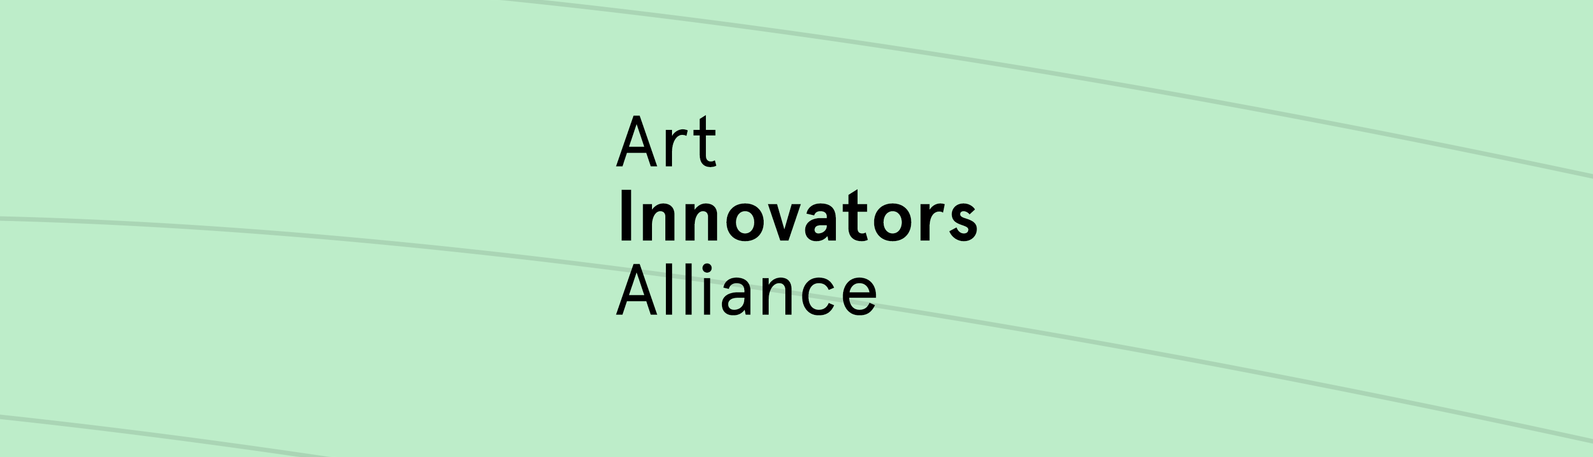 Announcing the Inaugural Art Innovators Alliance Event,